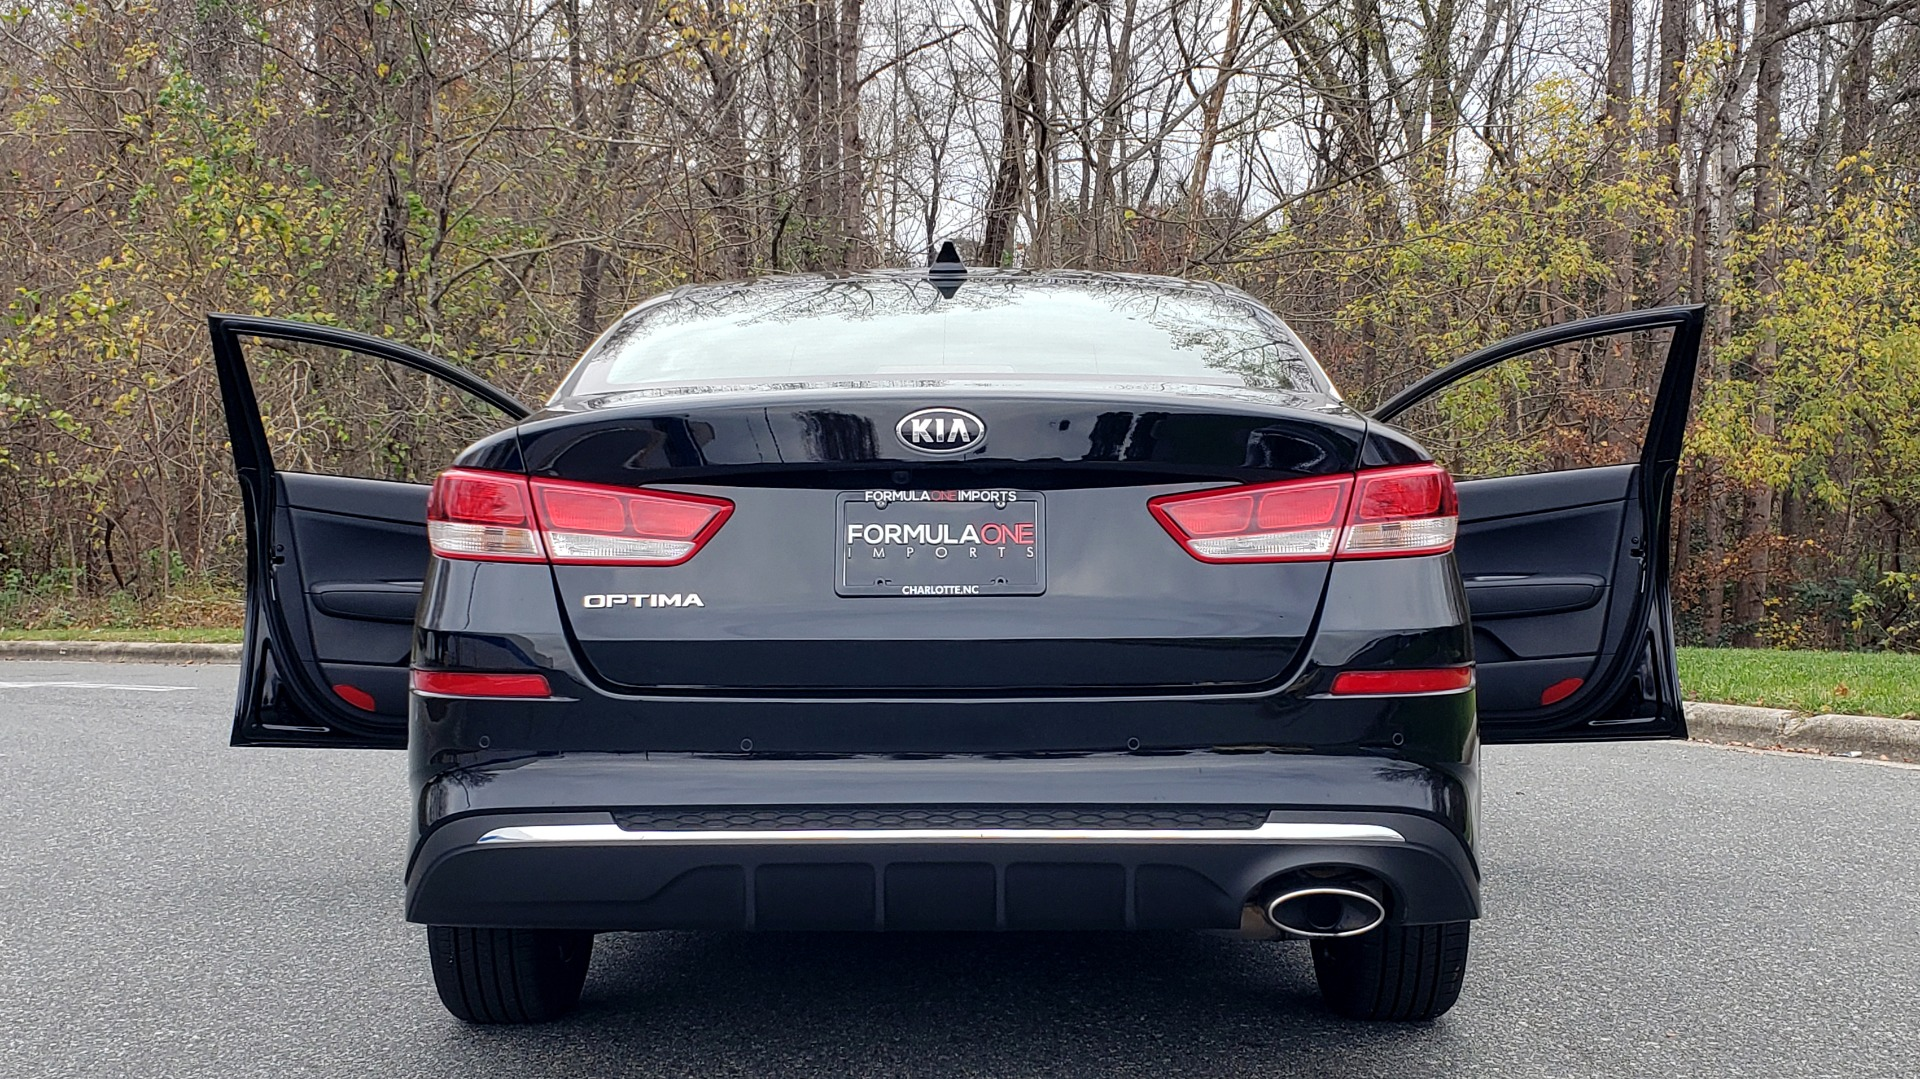 Used 2019 Kia OPTIMA LX AUTO / 2.4L 4-CYL / 6-SPD AUTO / REARVIEW / LOW MILES for sale $17,995 at Formula Imports in Charlotte NC 28227 24